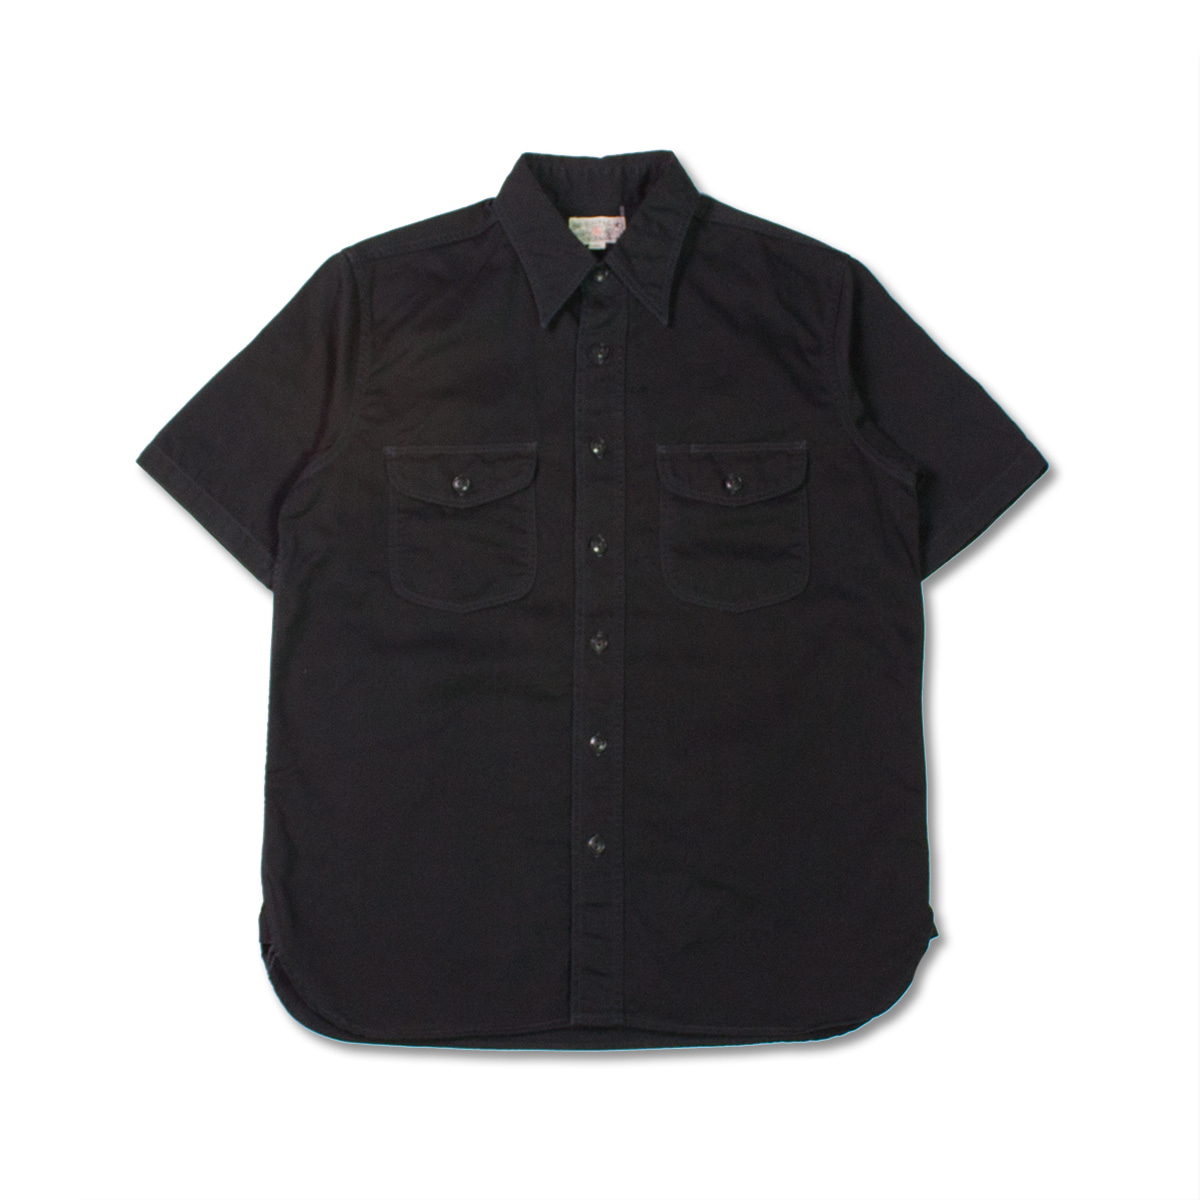 [BUZZ RICKSON'S] BR38401 HERRINGBONE S/S WORK SHIRT 'BLACK'